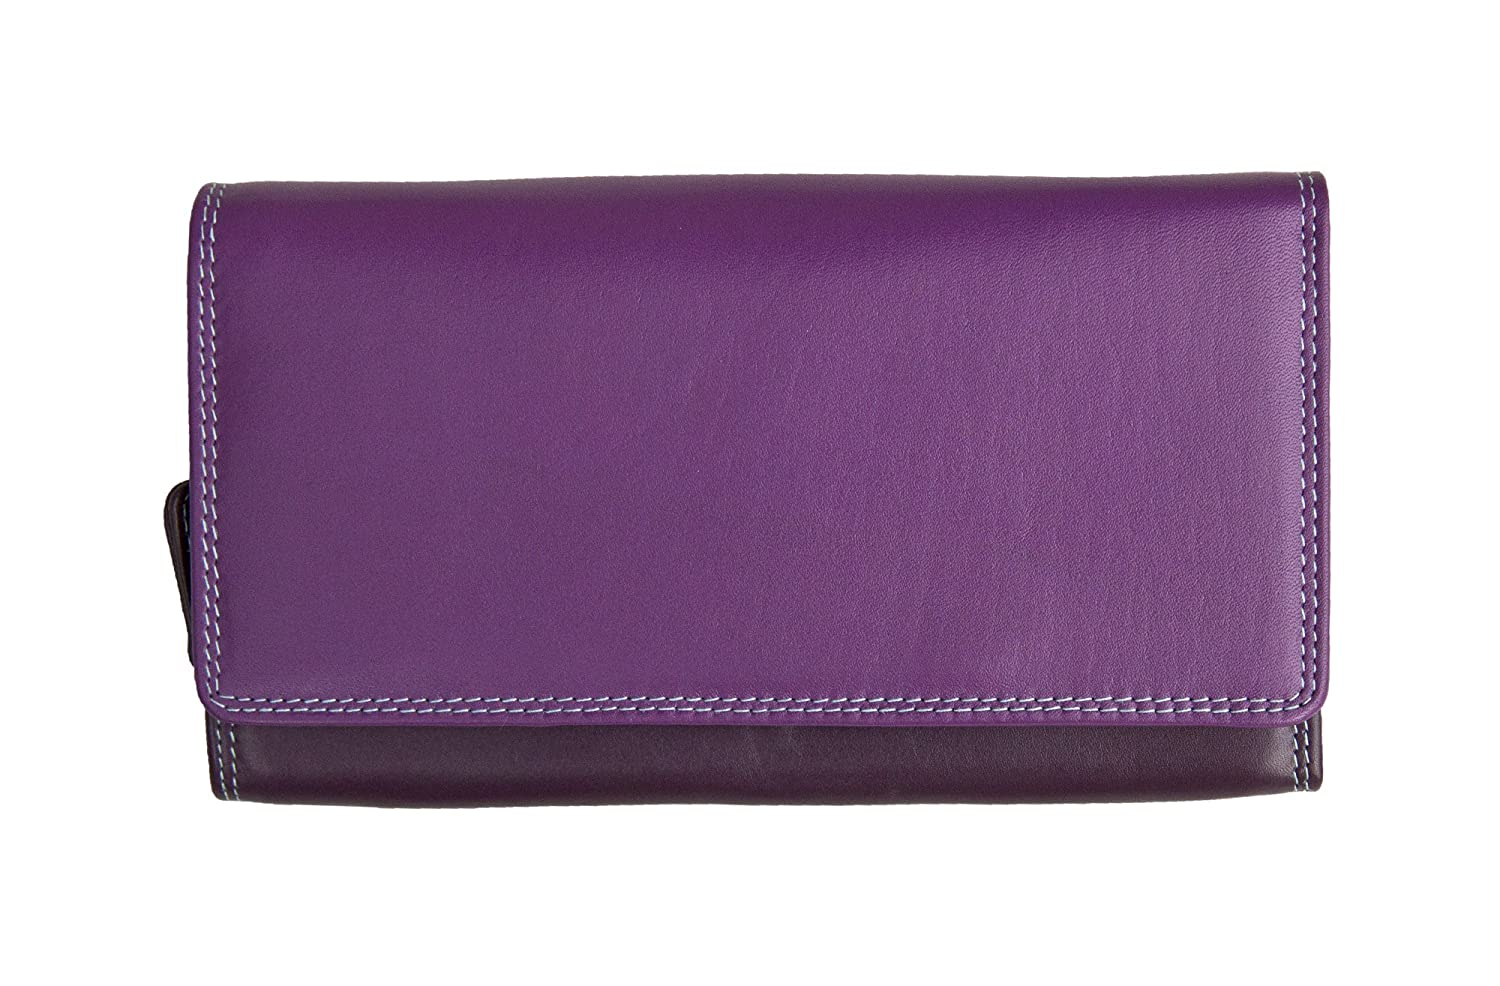 005794fc1 Wombat Ladies Large Multi-Colour Leather Matinee Purse Purple Sweet Violet:  Amazon.co.uk: Shoes & Bags